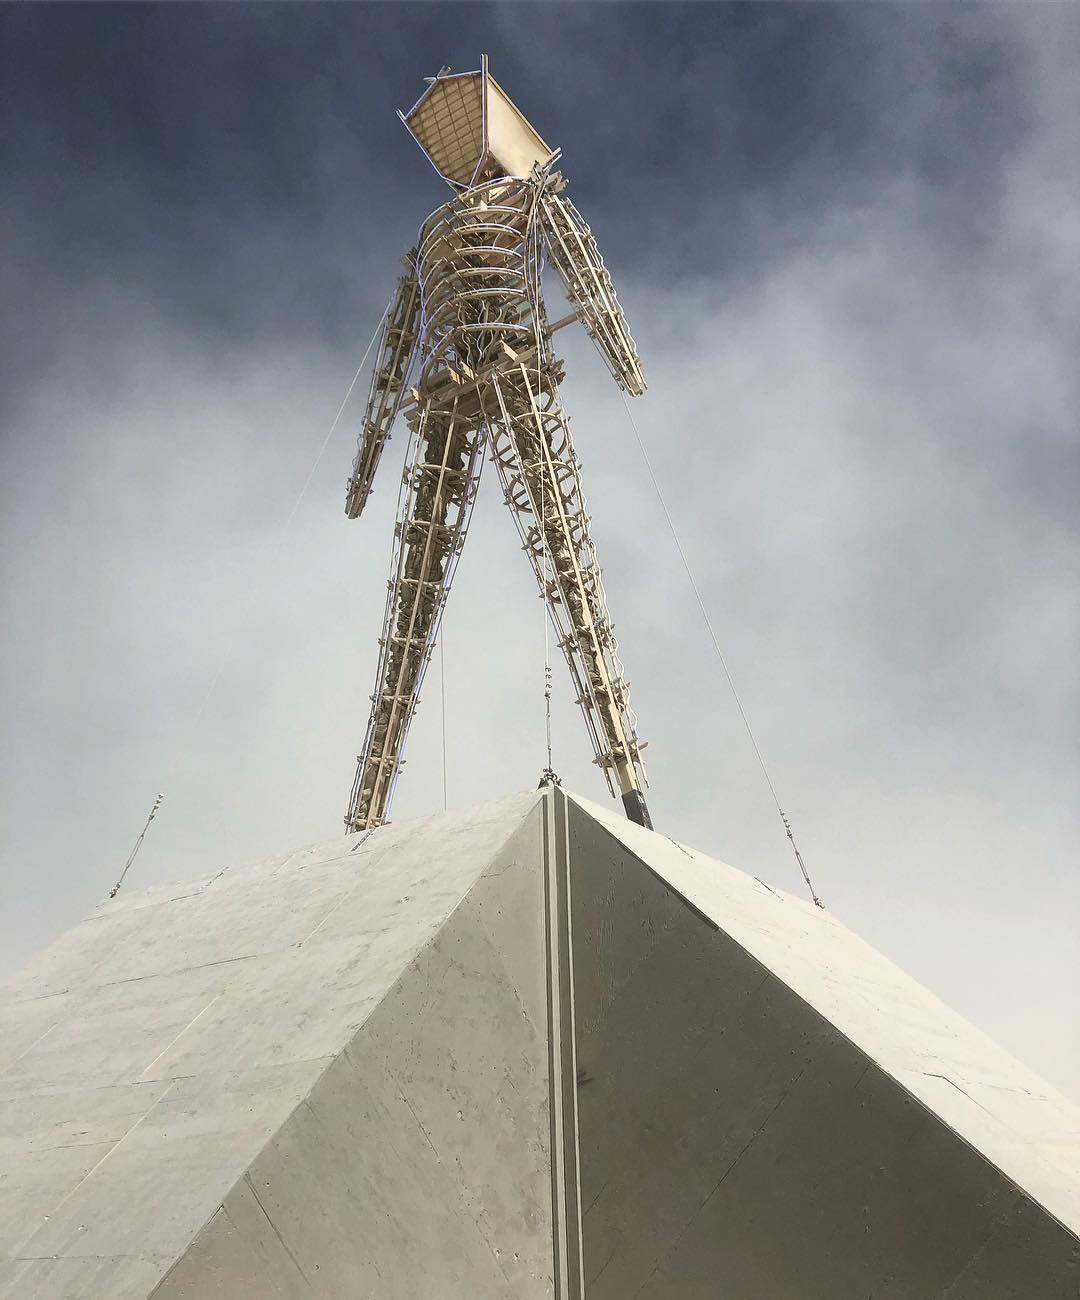 burning man-2018 Фото дня: Burning man-2018 20